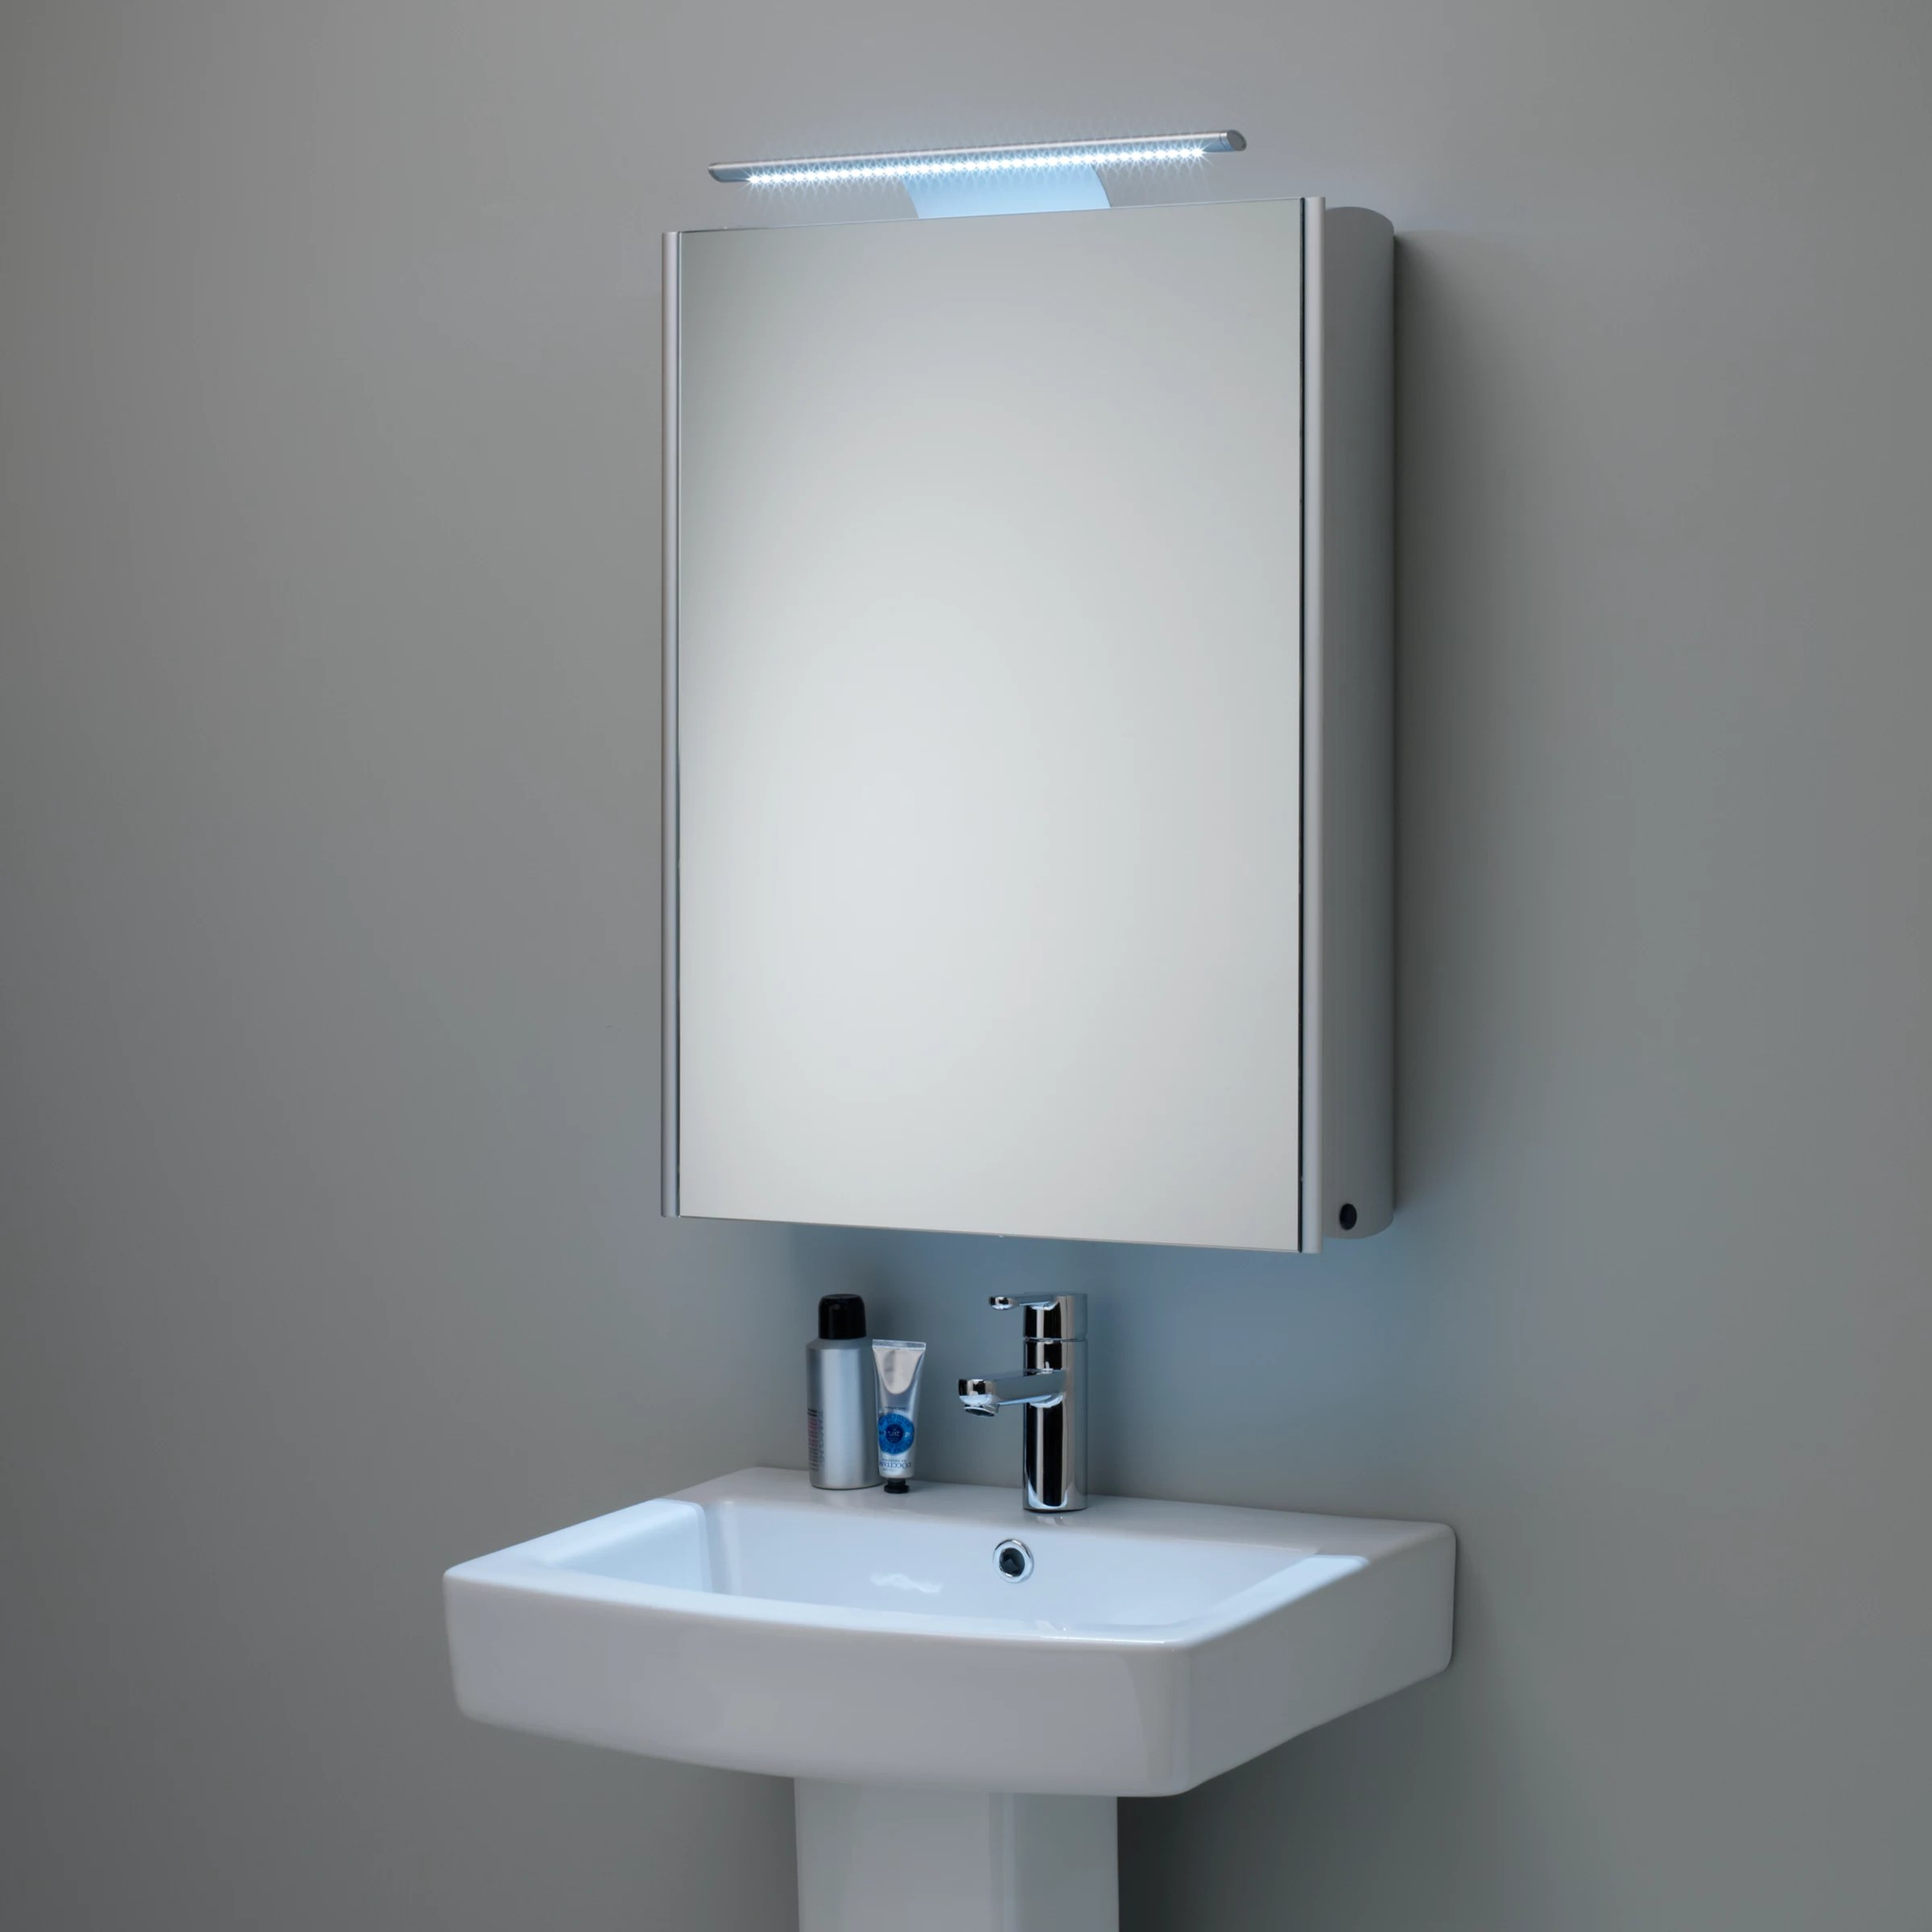 Mirrored Bathroom Cupboard Buy Roper Rhodes Equinox Illuminated Single Mirrored